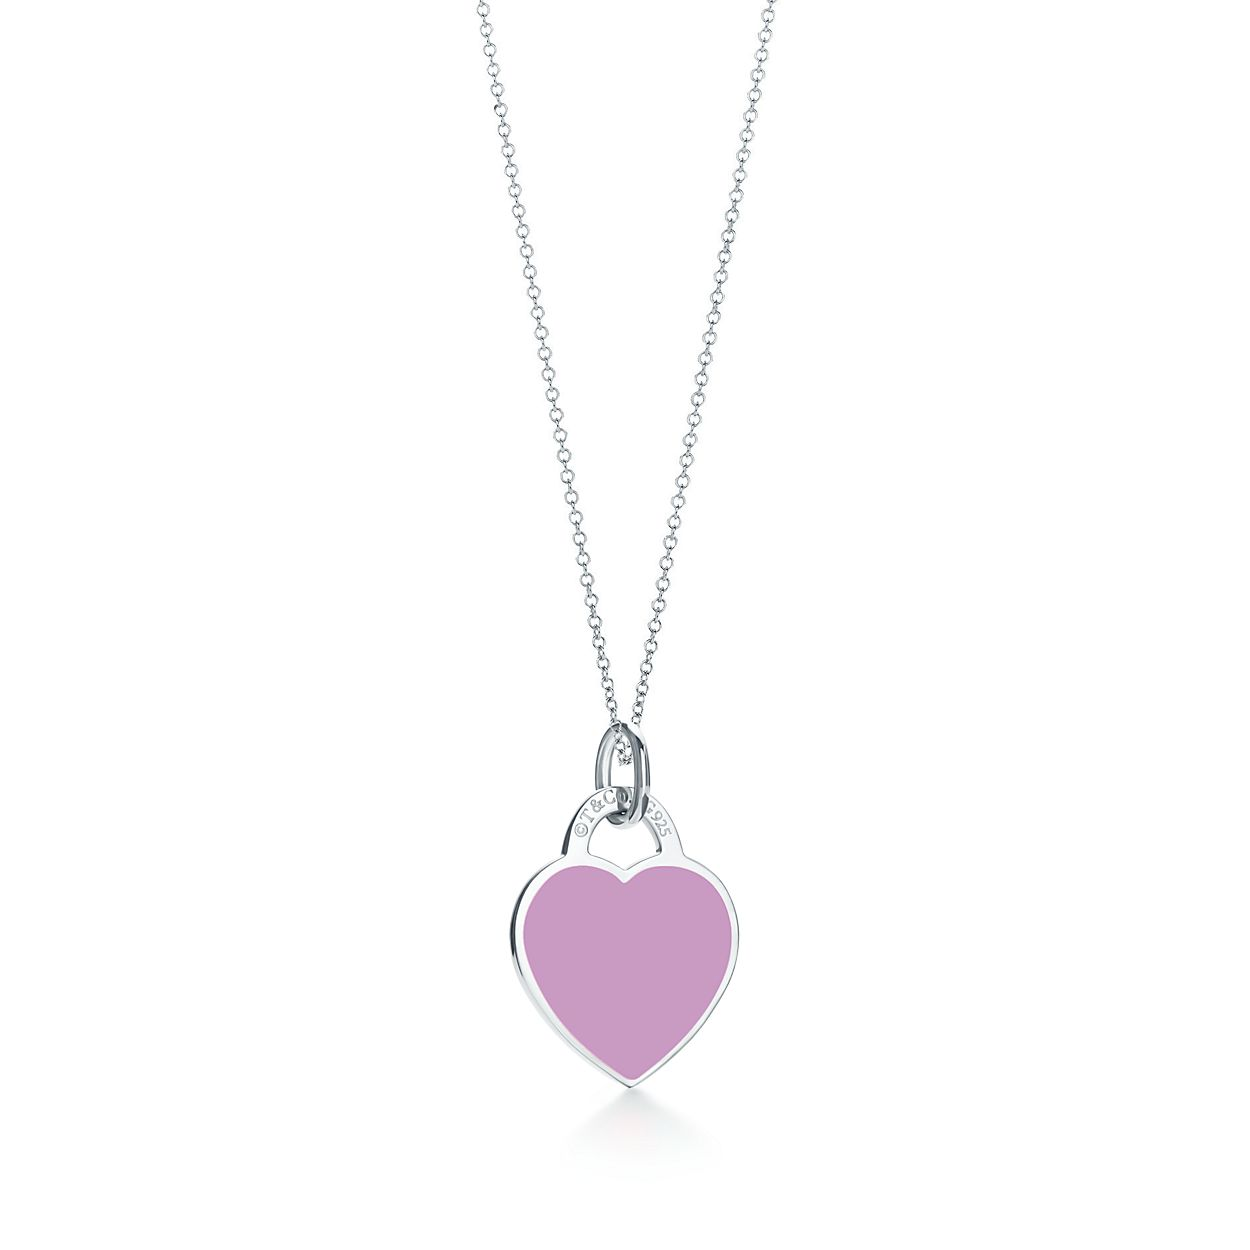 color heart from popular crystal agate purple natural jewelry necklace necklaces pendants item quartz real for in pendant wholesale amethyst stone female shaped